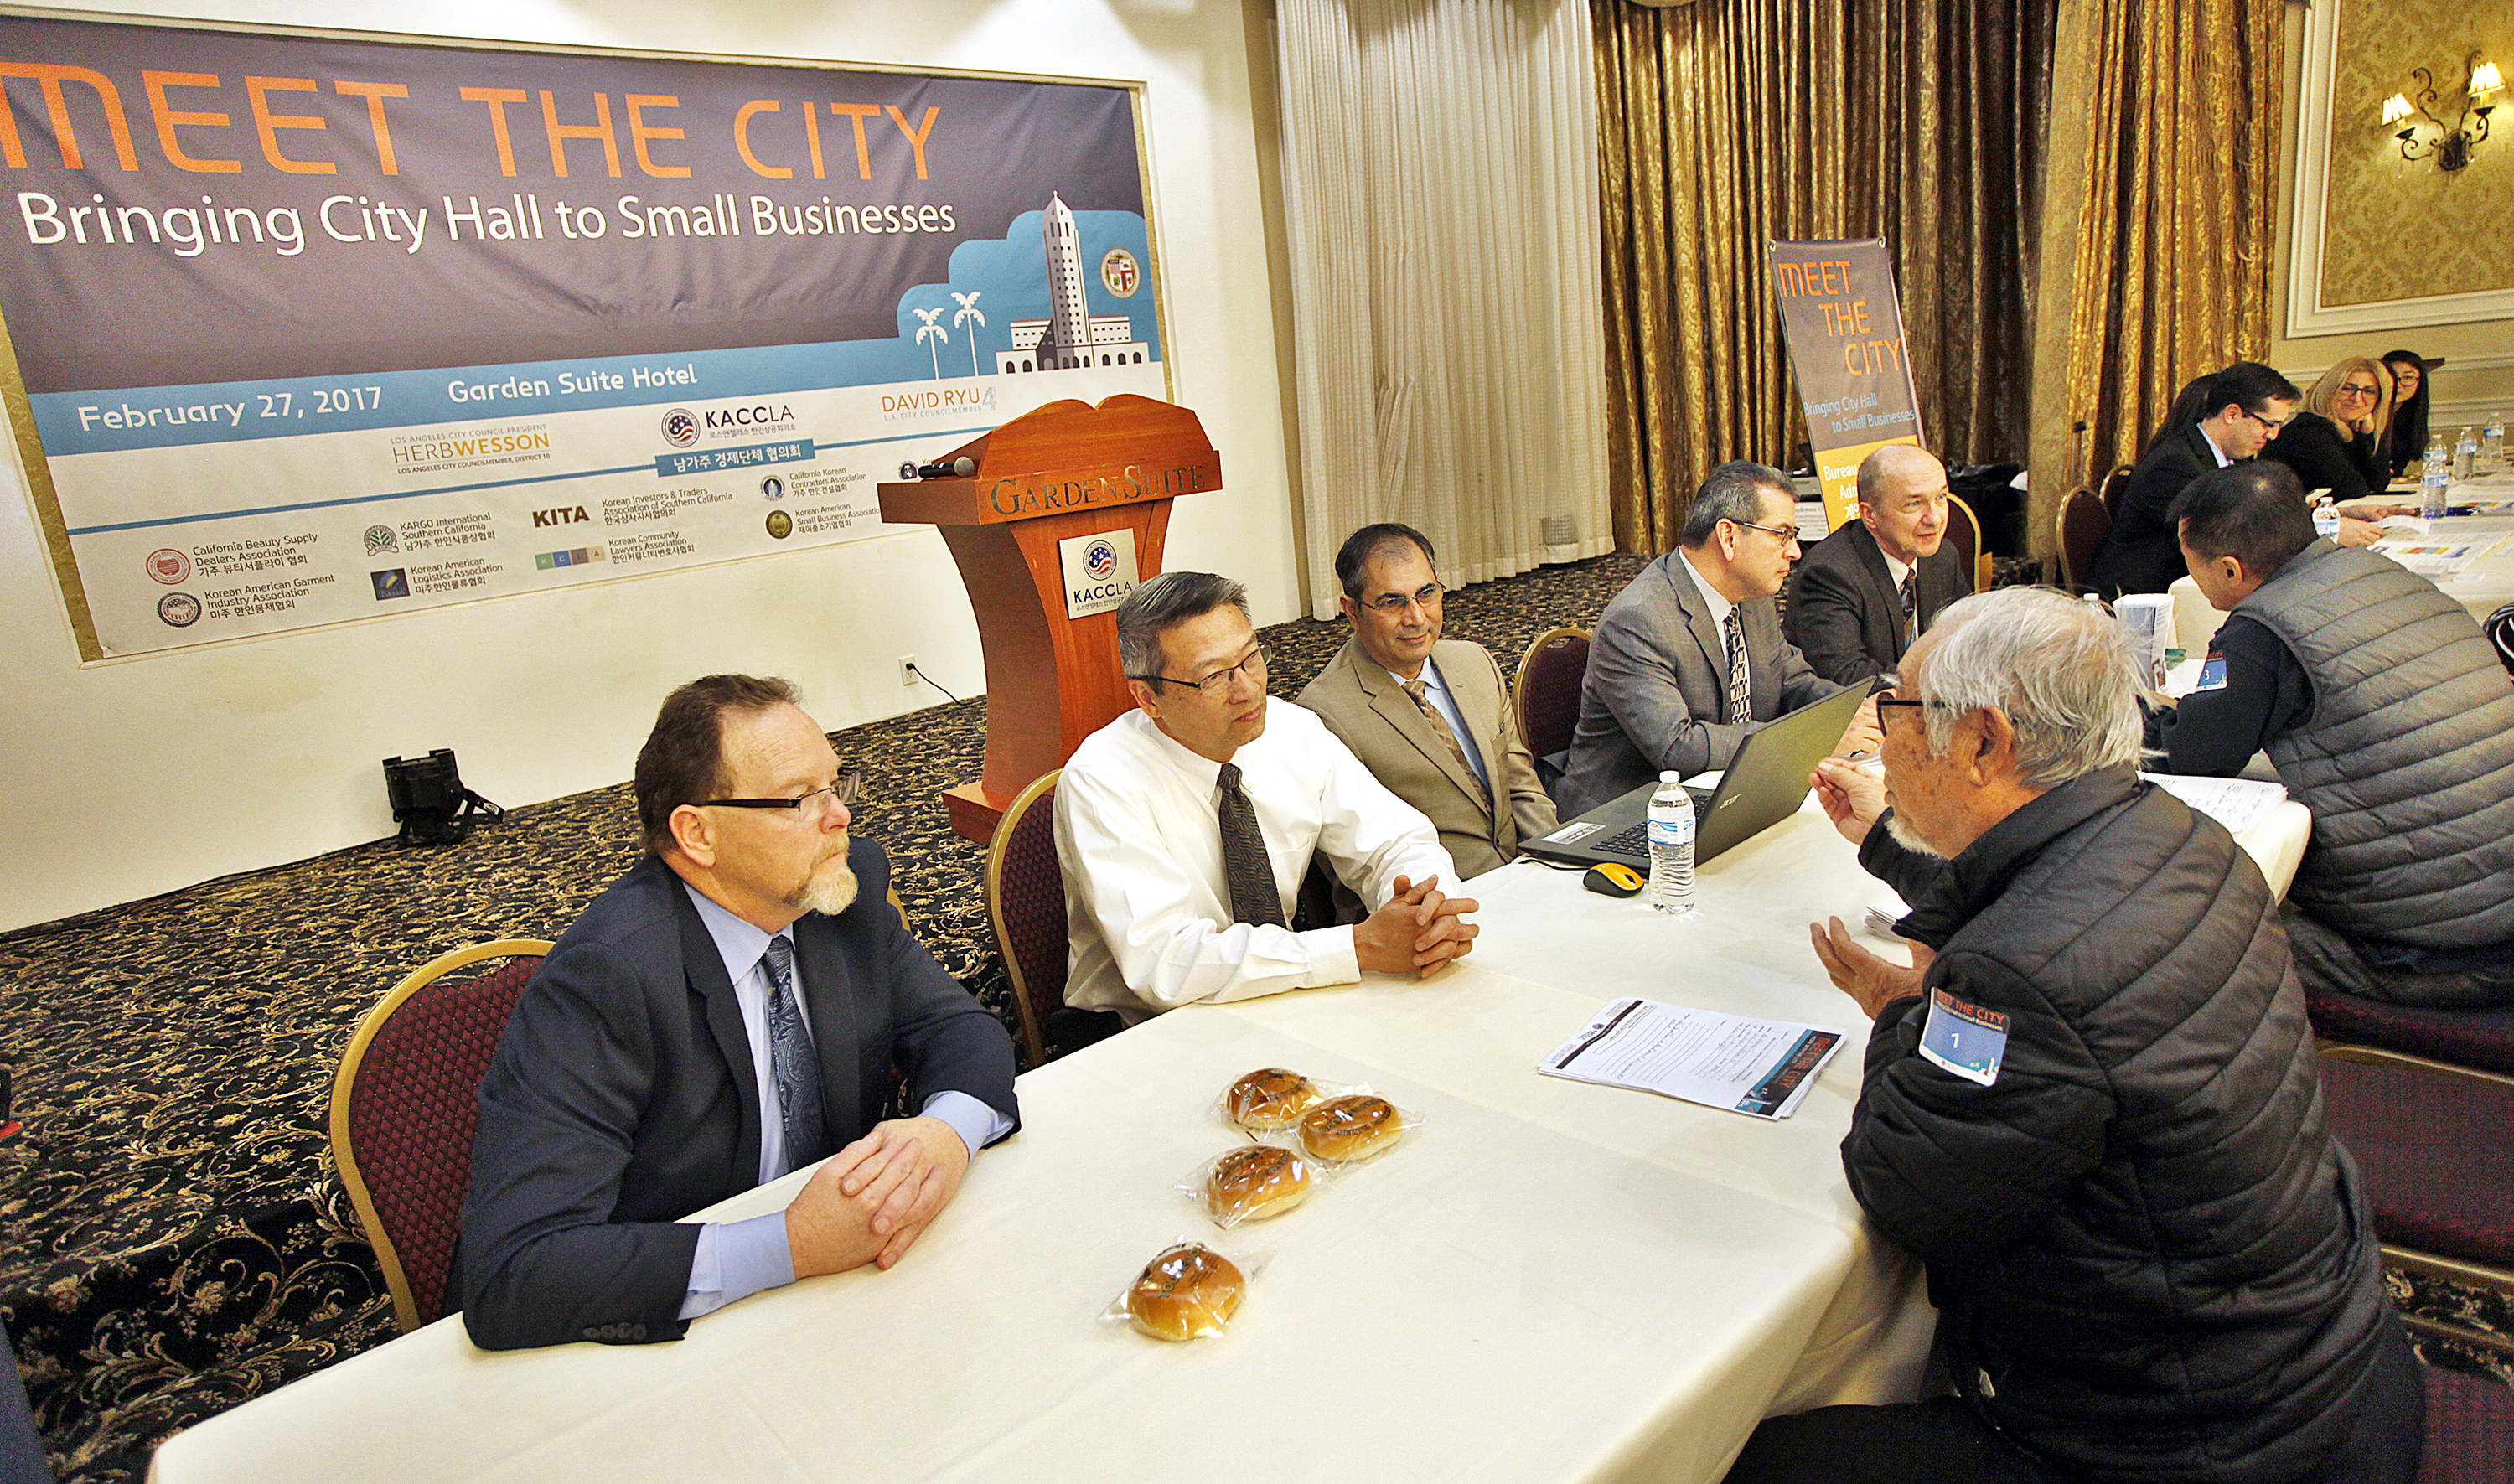 'Meet the City' hosted by the Korean Chamber of Commerce, arranged a meeting between small business owners in the Korean-American community with L.A.'s city officials on Feb. 27 at Koreatown's Garden Suite Hotel.